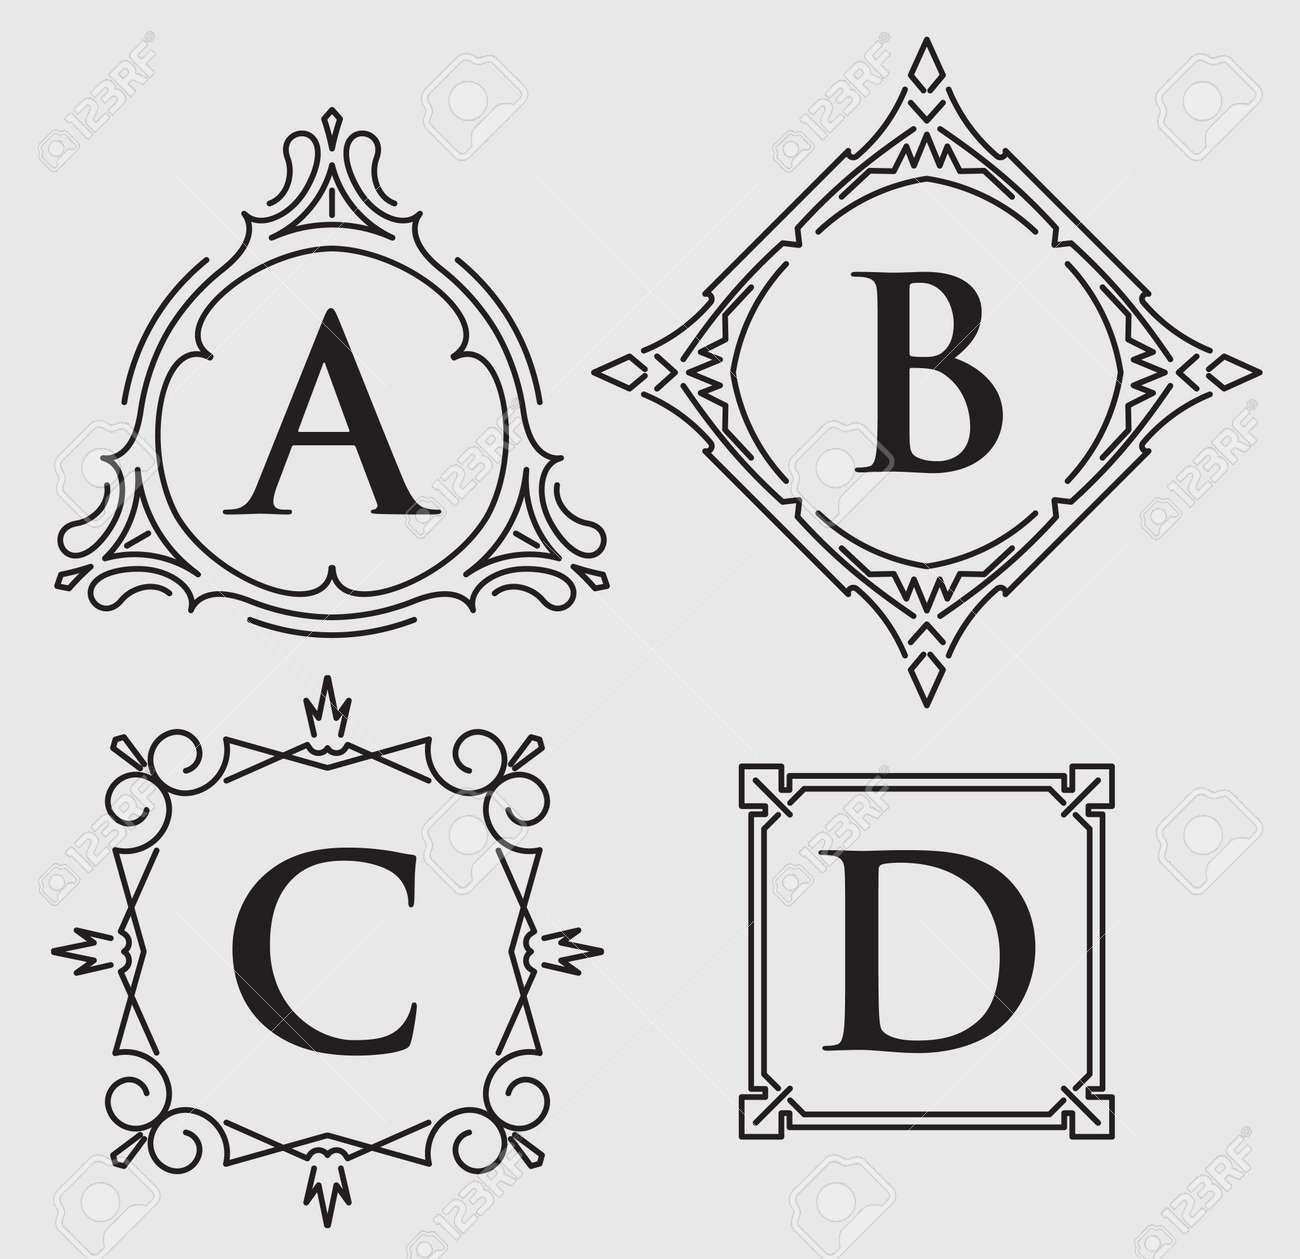 Set Of 4 Calligraphic Frames For Monogram Or Other Design With ...